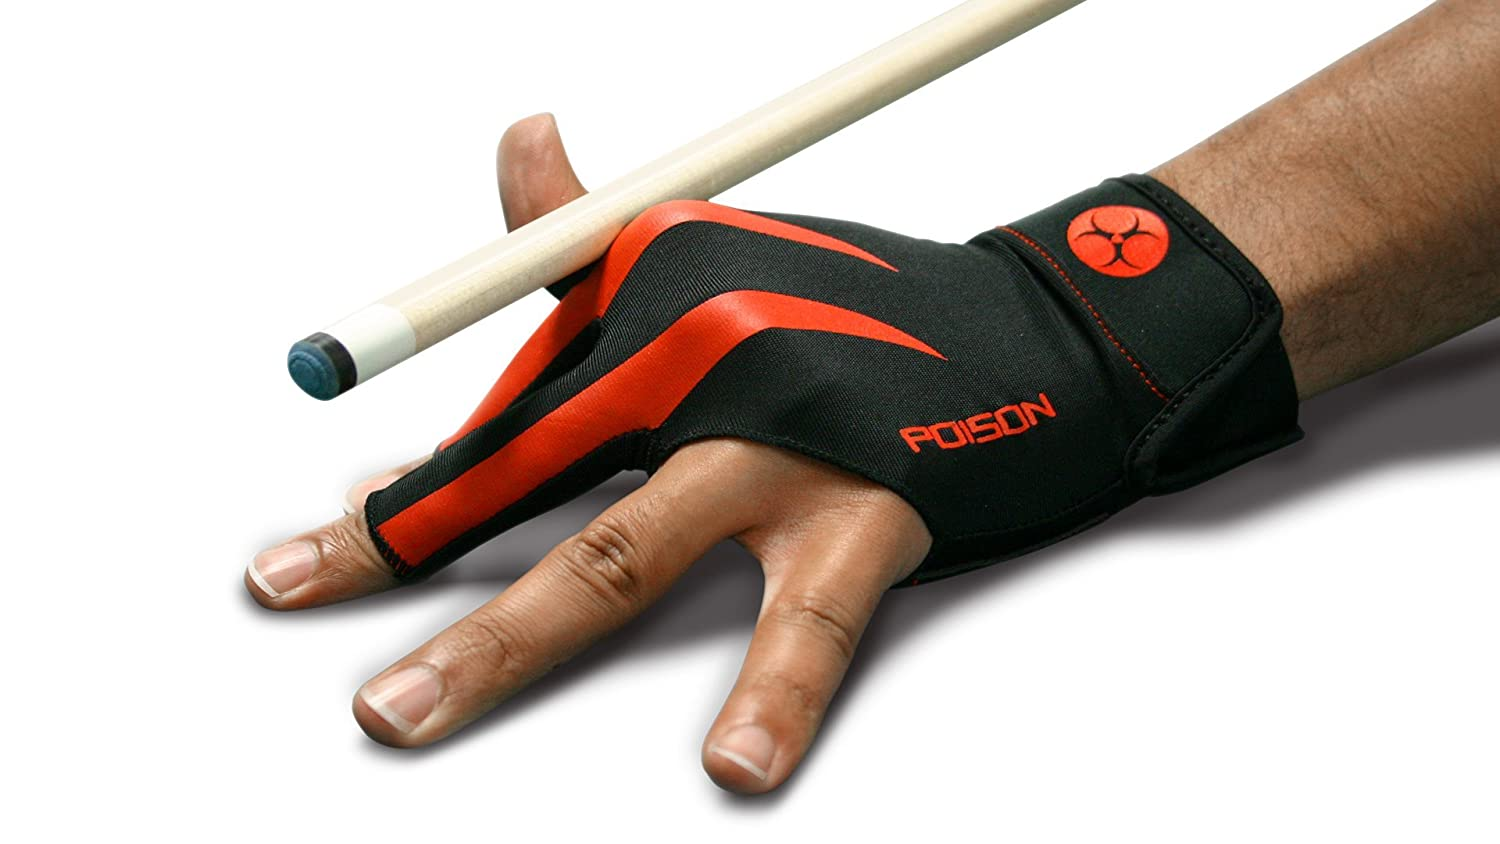 Poison Logo Pool Glove - Large - Left Hand Fit - For Right Handed Players